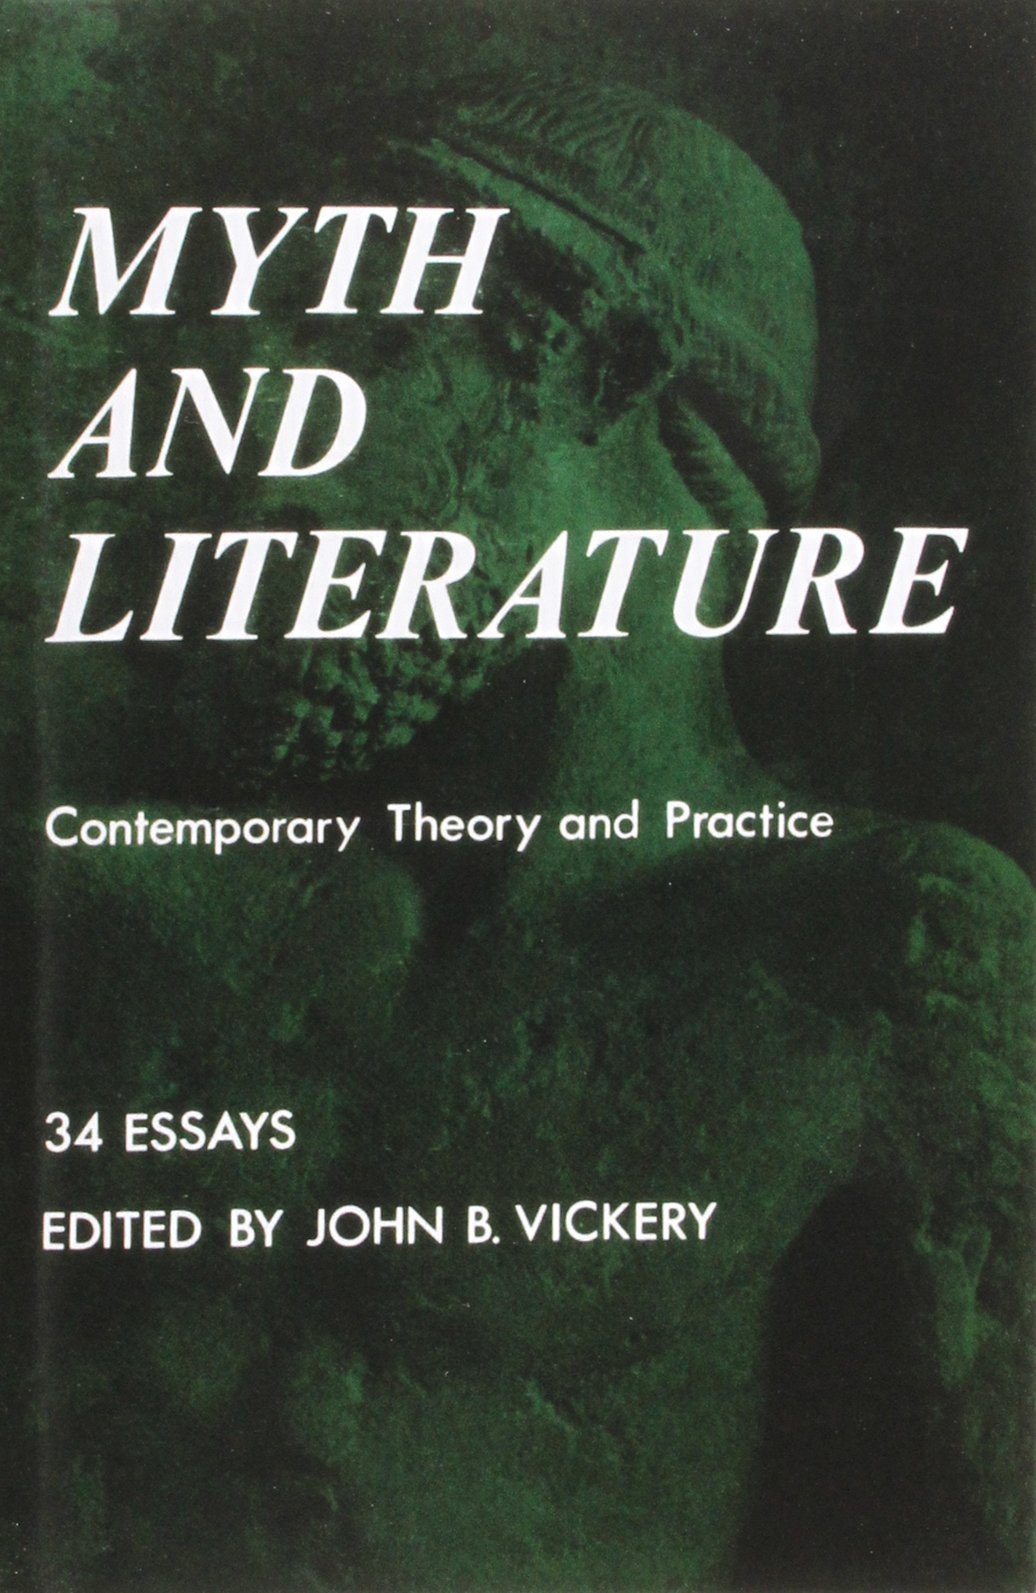 myth and literature contemporary theory and practice bison book myth and literature contemporary theory and practice bison book john b vickery 9780803252080 com books